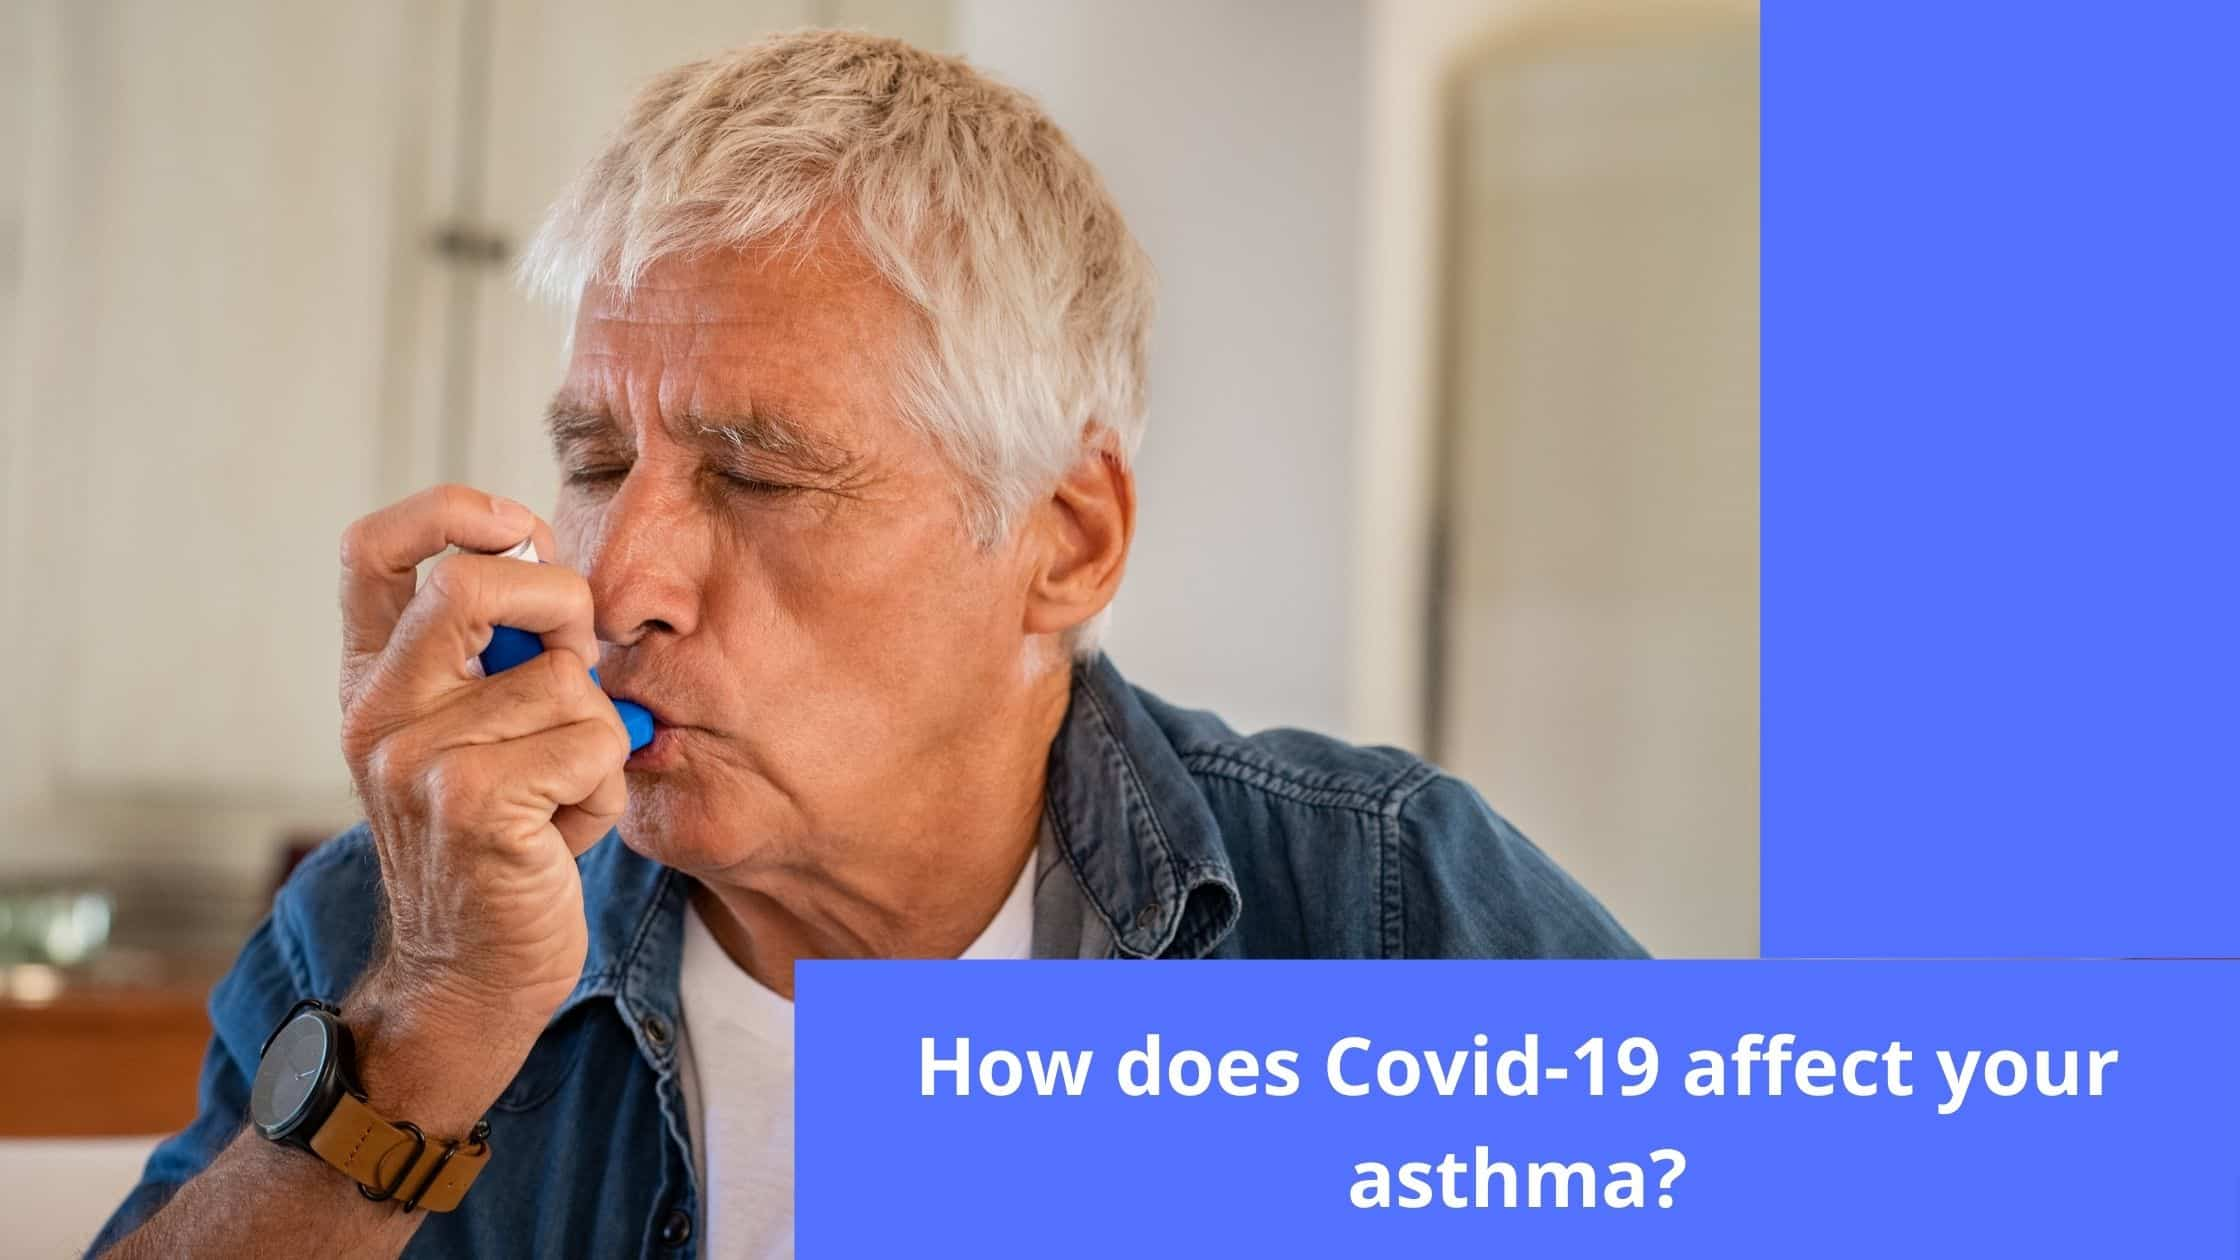 How does COVID-19 affect asthma?